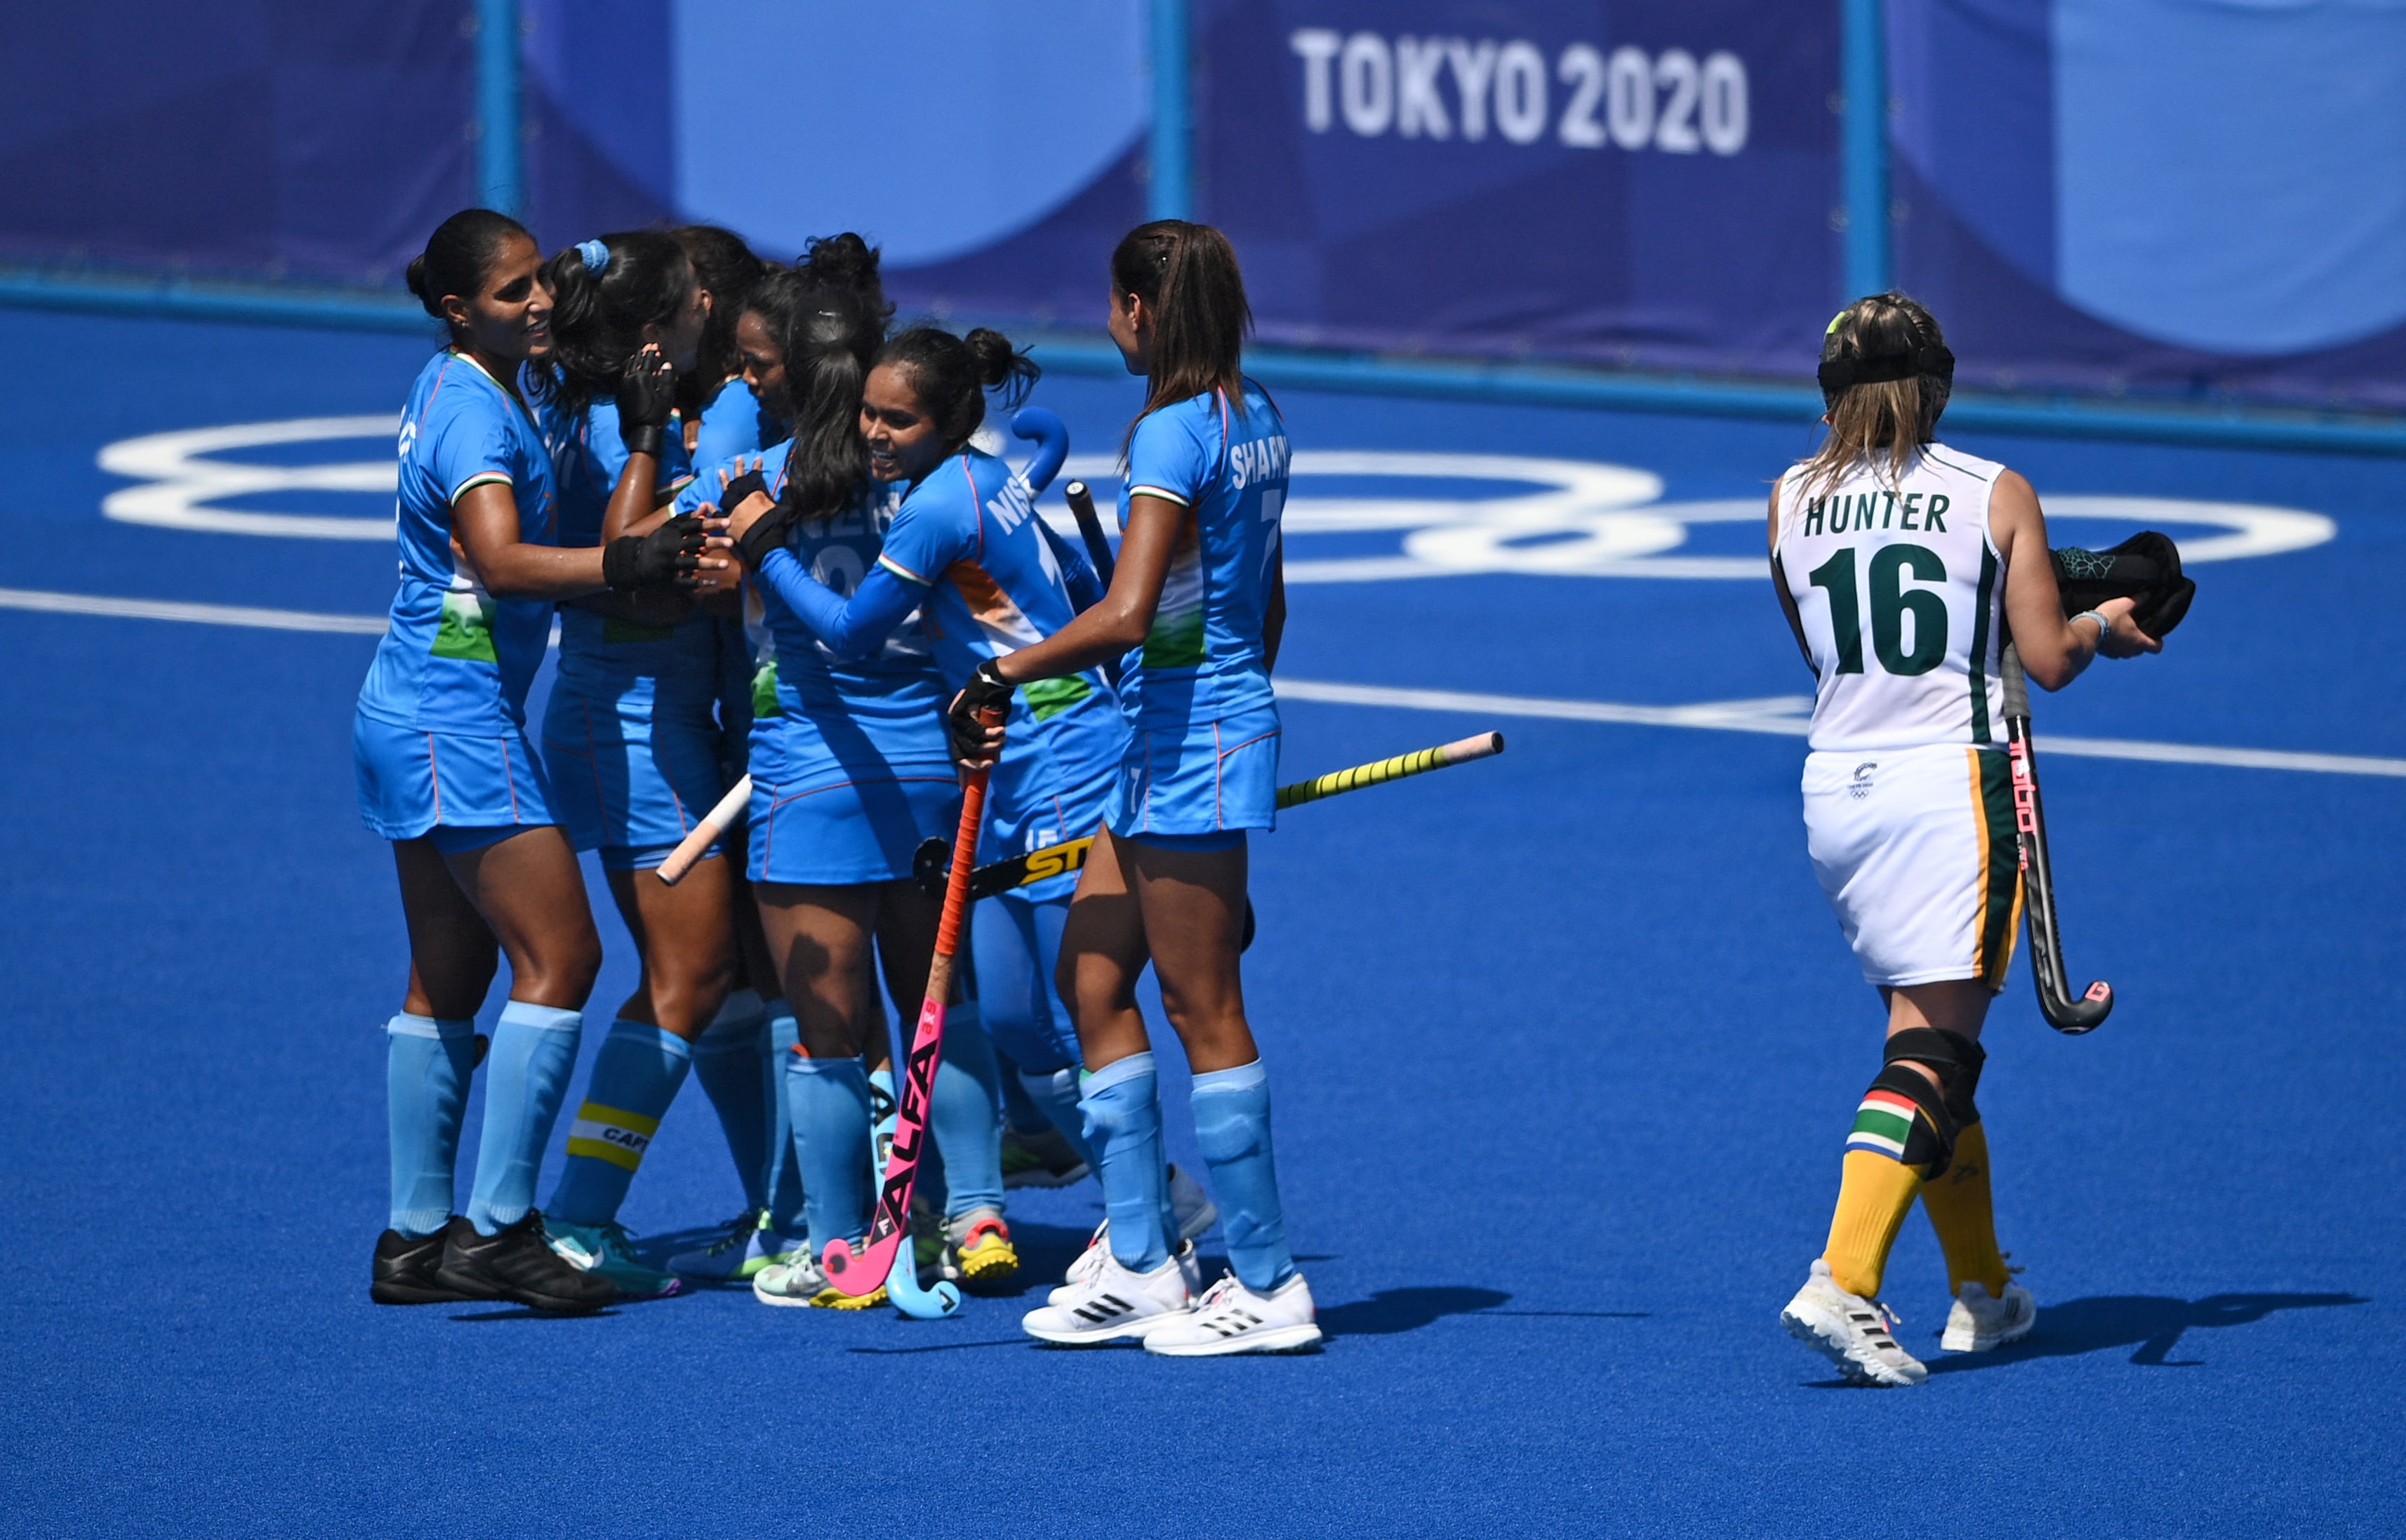 Tokyo Olympics Highlights: Indian Womens Hockey Team Qualifies For Quarters After Ireland Lose